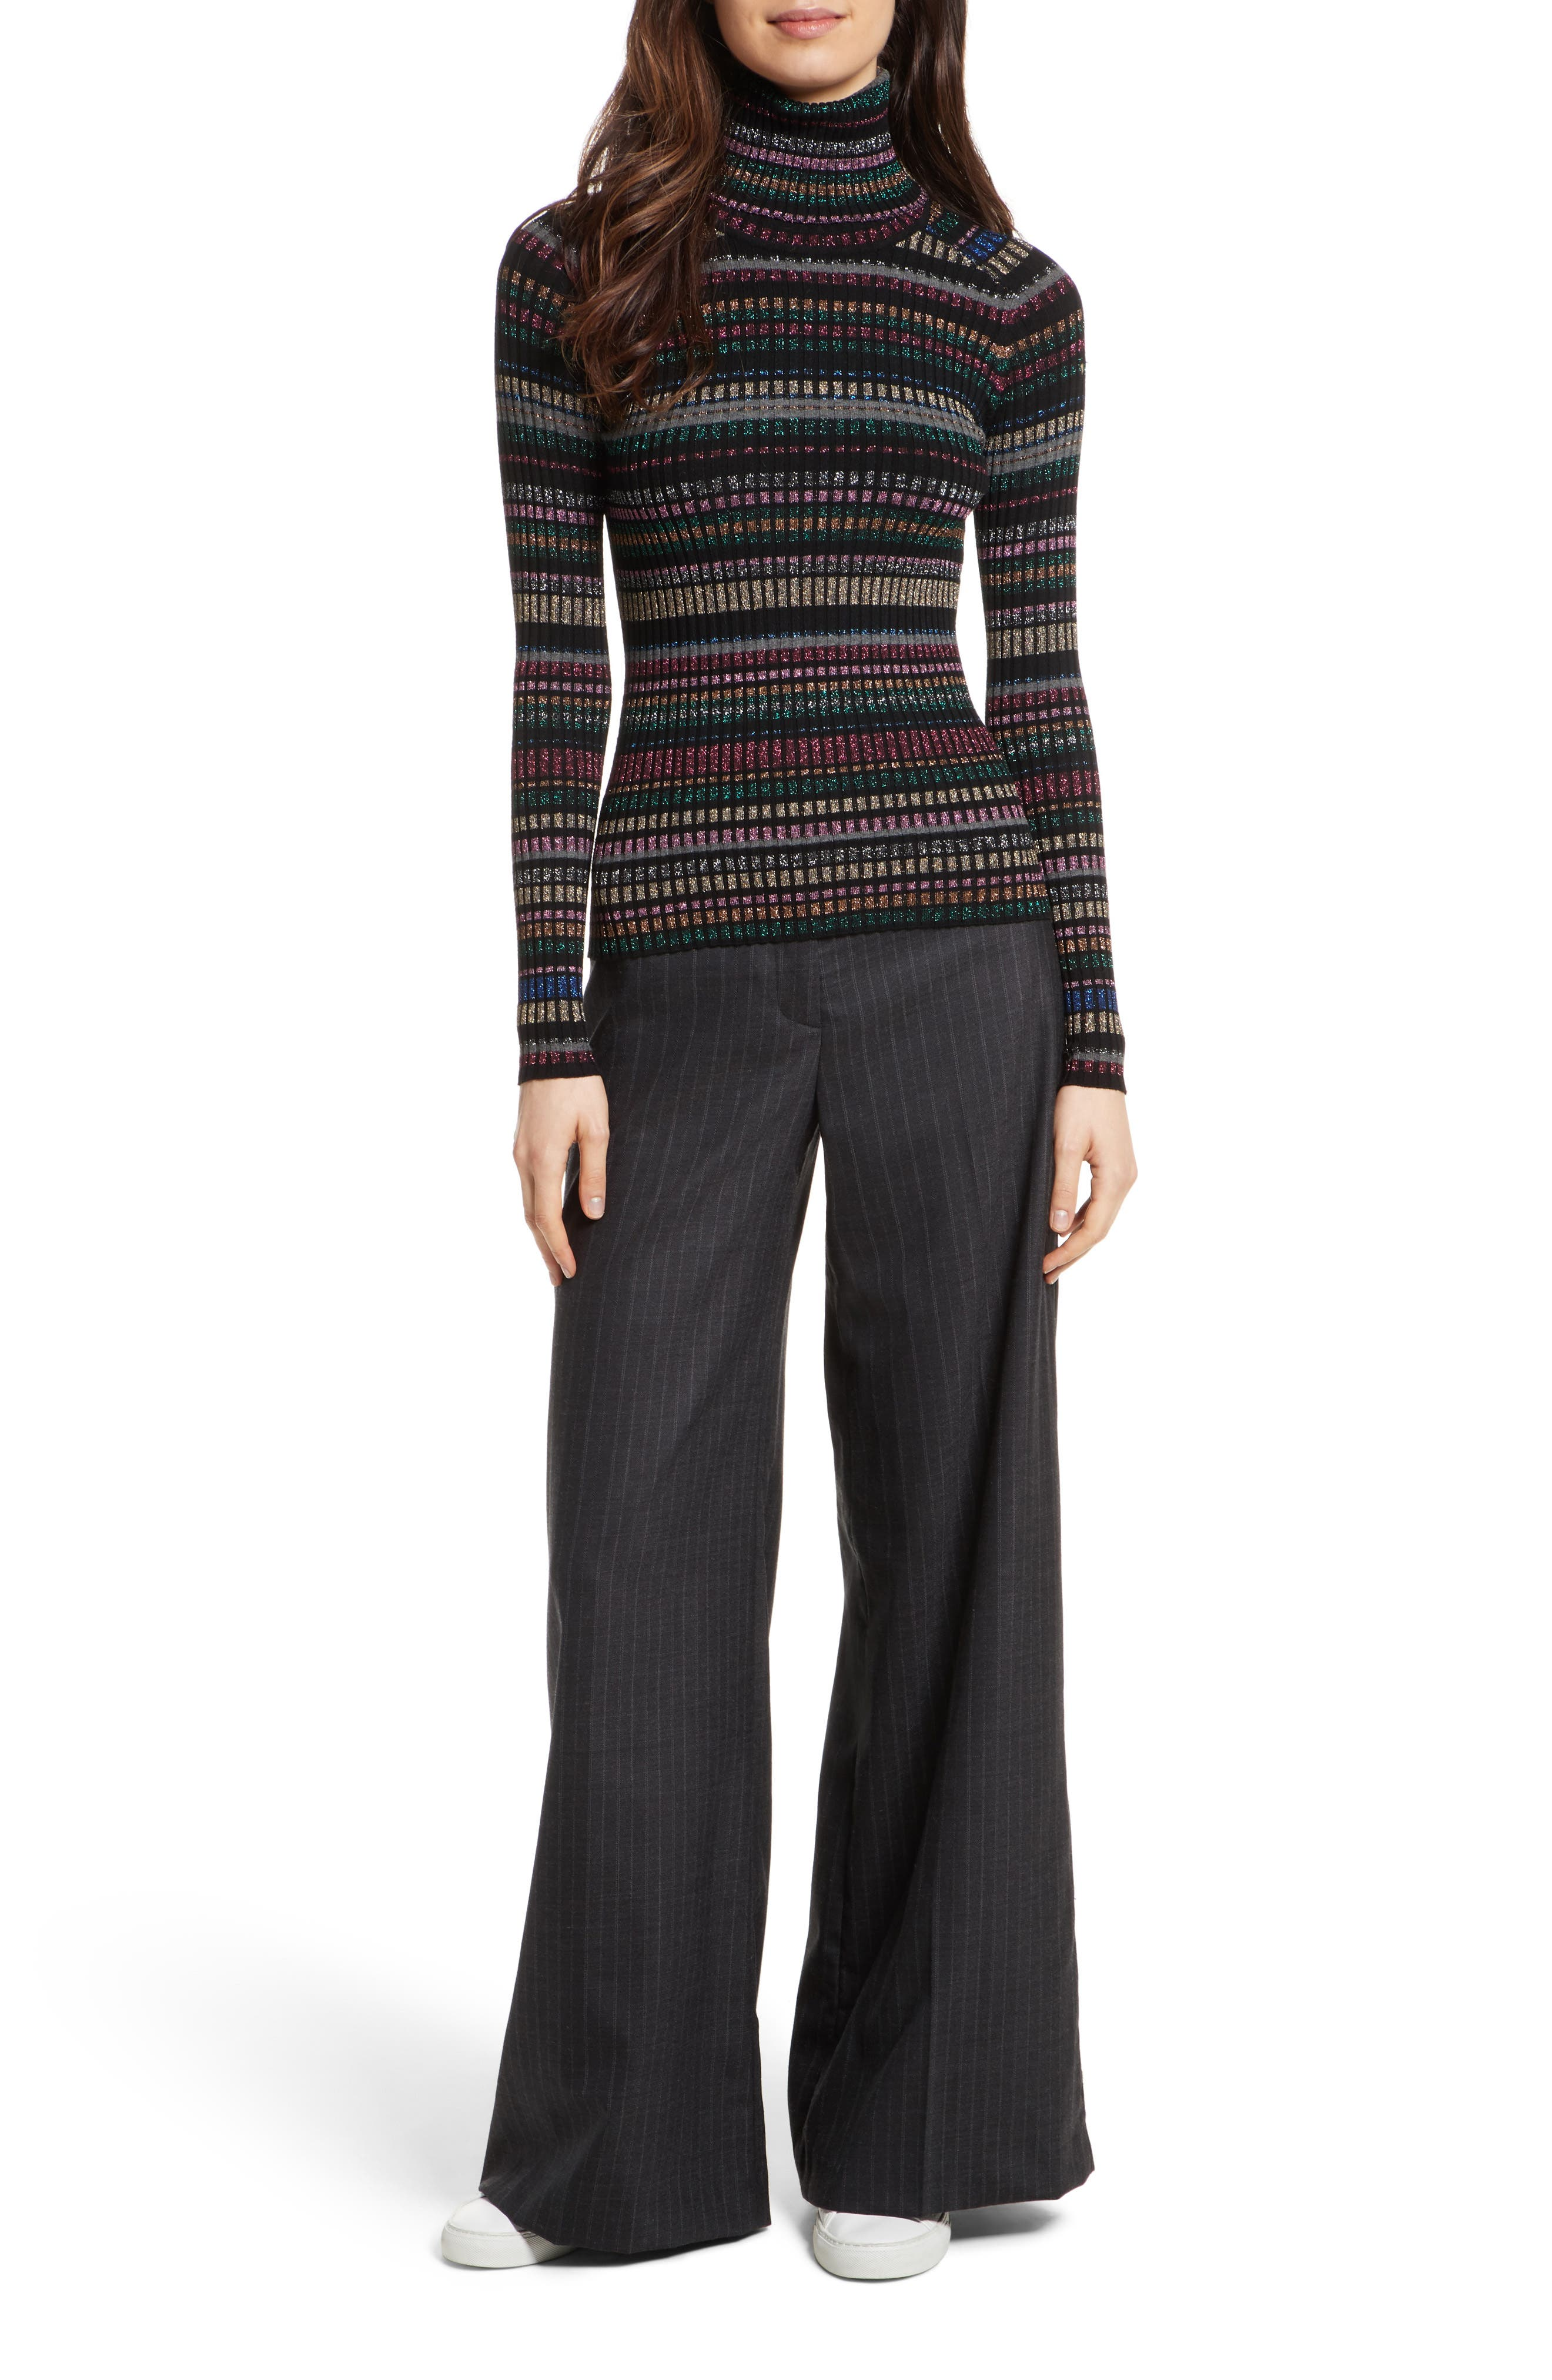 Sia Pinstripe Italian Stretch Wool Trousers,                             Alternate thumbnail 7, color,                             020